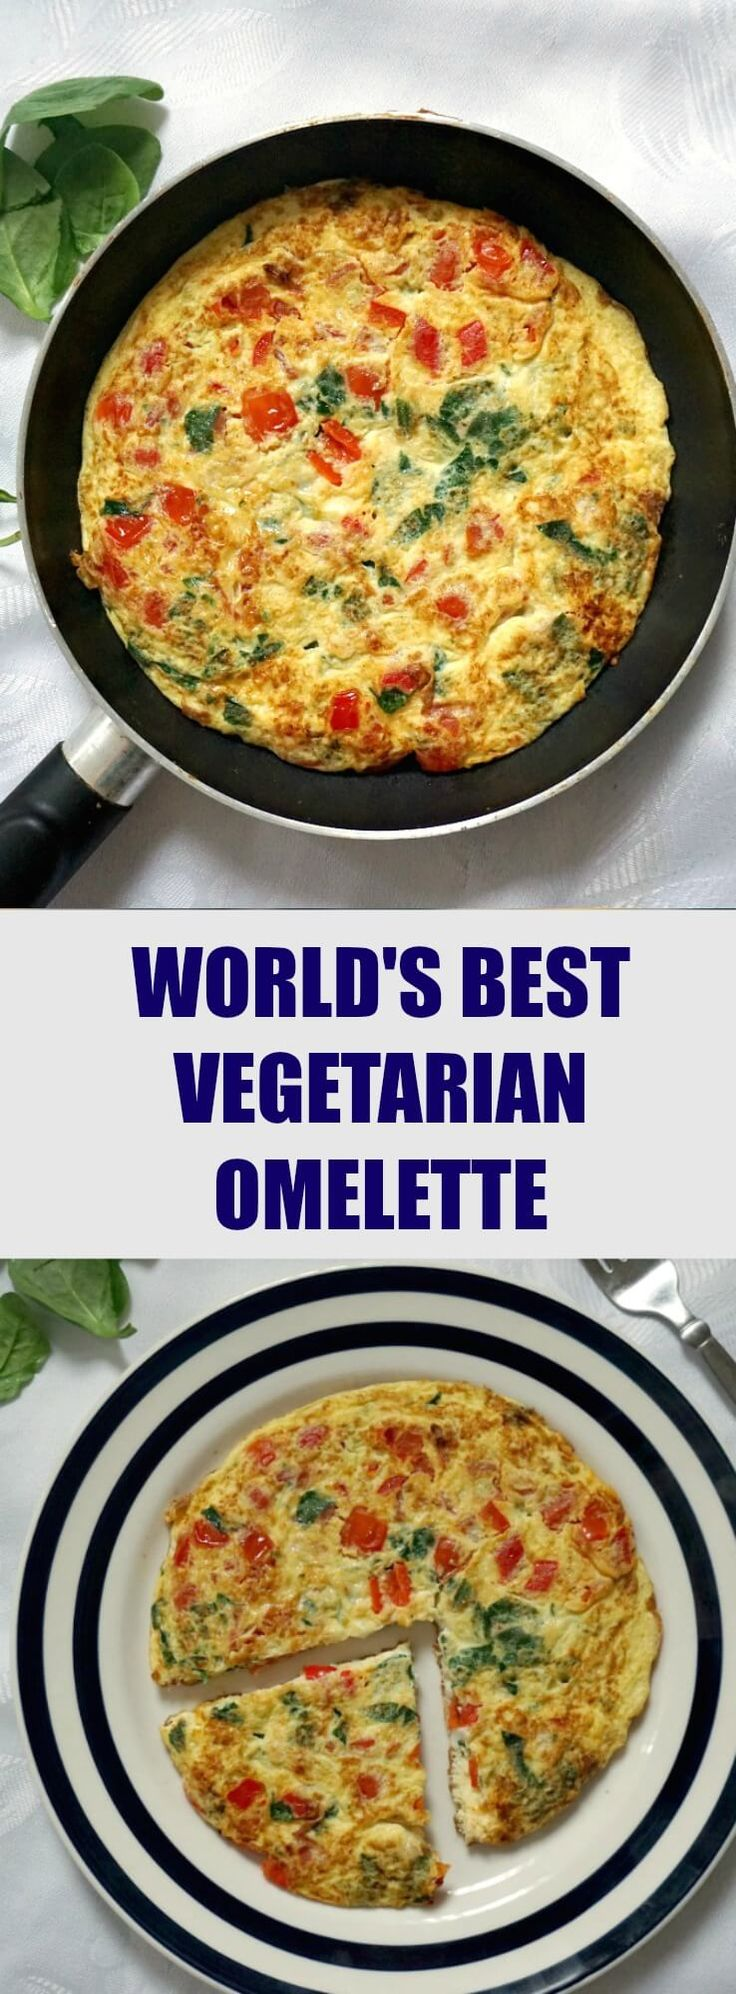 World's best vegetarian omelette recipe with cherry tomatoes, spinach and cheese, for a healthy and happy start of your day. It's easy to make, and the secret to an absolutely great omelette is using fresh ingredients. You'd be surprised how this omelette tastes like a restaurant one. Yes, you are a good cook! #omelette, #omelet , #healthybreakfast , #healthyrecipes